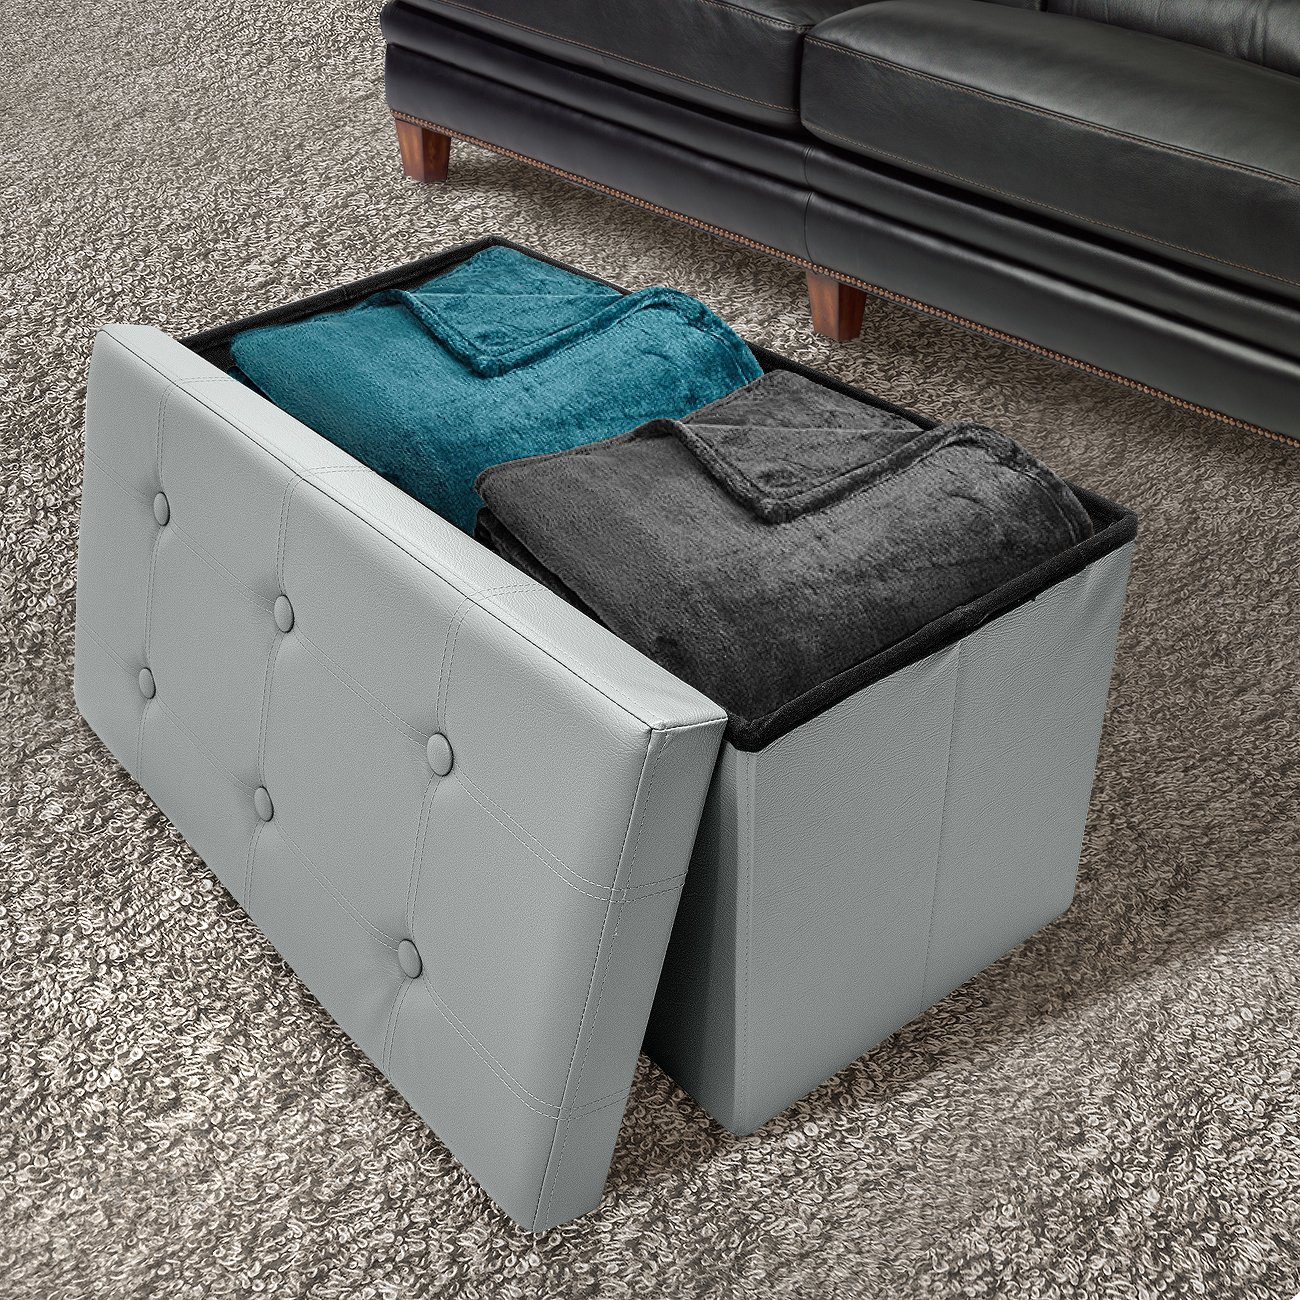 Sorbus Storage Bench Chest Collapsible Folding Bench Ottoman with Cover Perfect Hope Chest, Pouffe Ottoman, Coffee Table, Seat, Foot Rest, and More Contemporary Faux Leather Gray